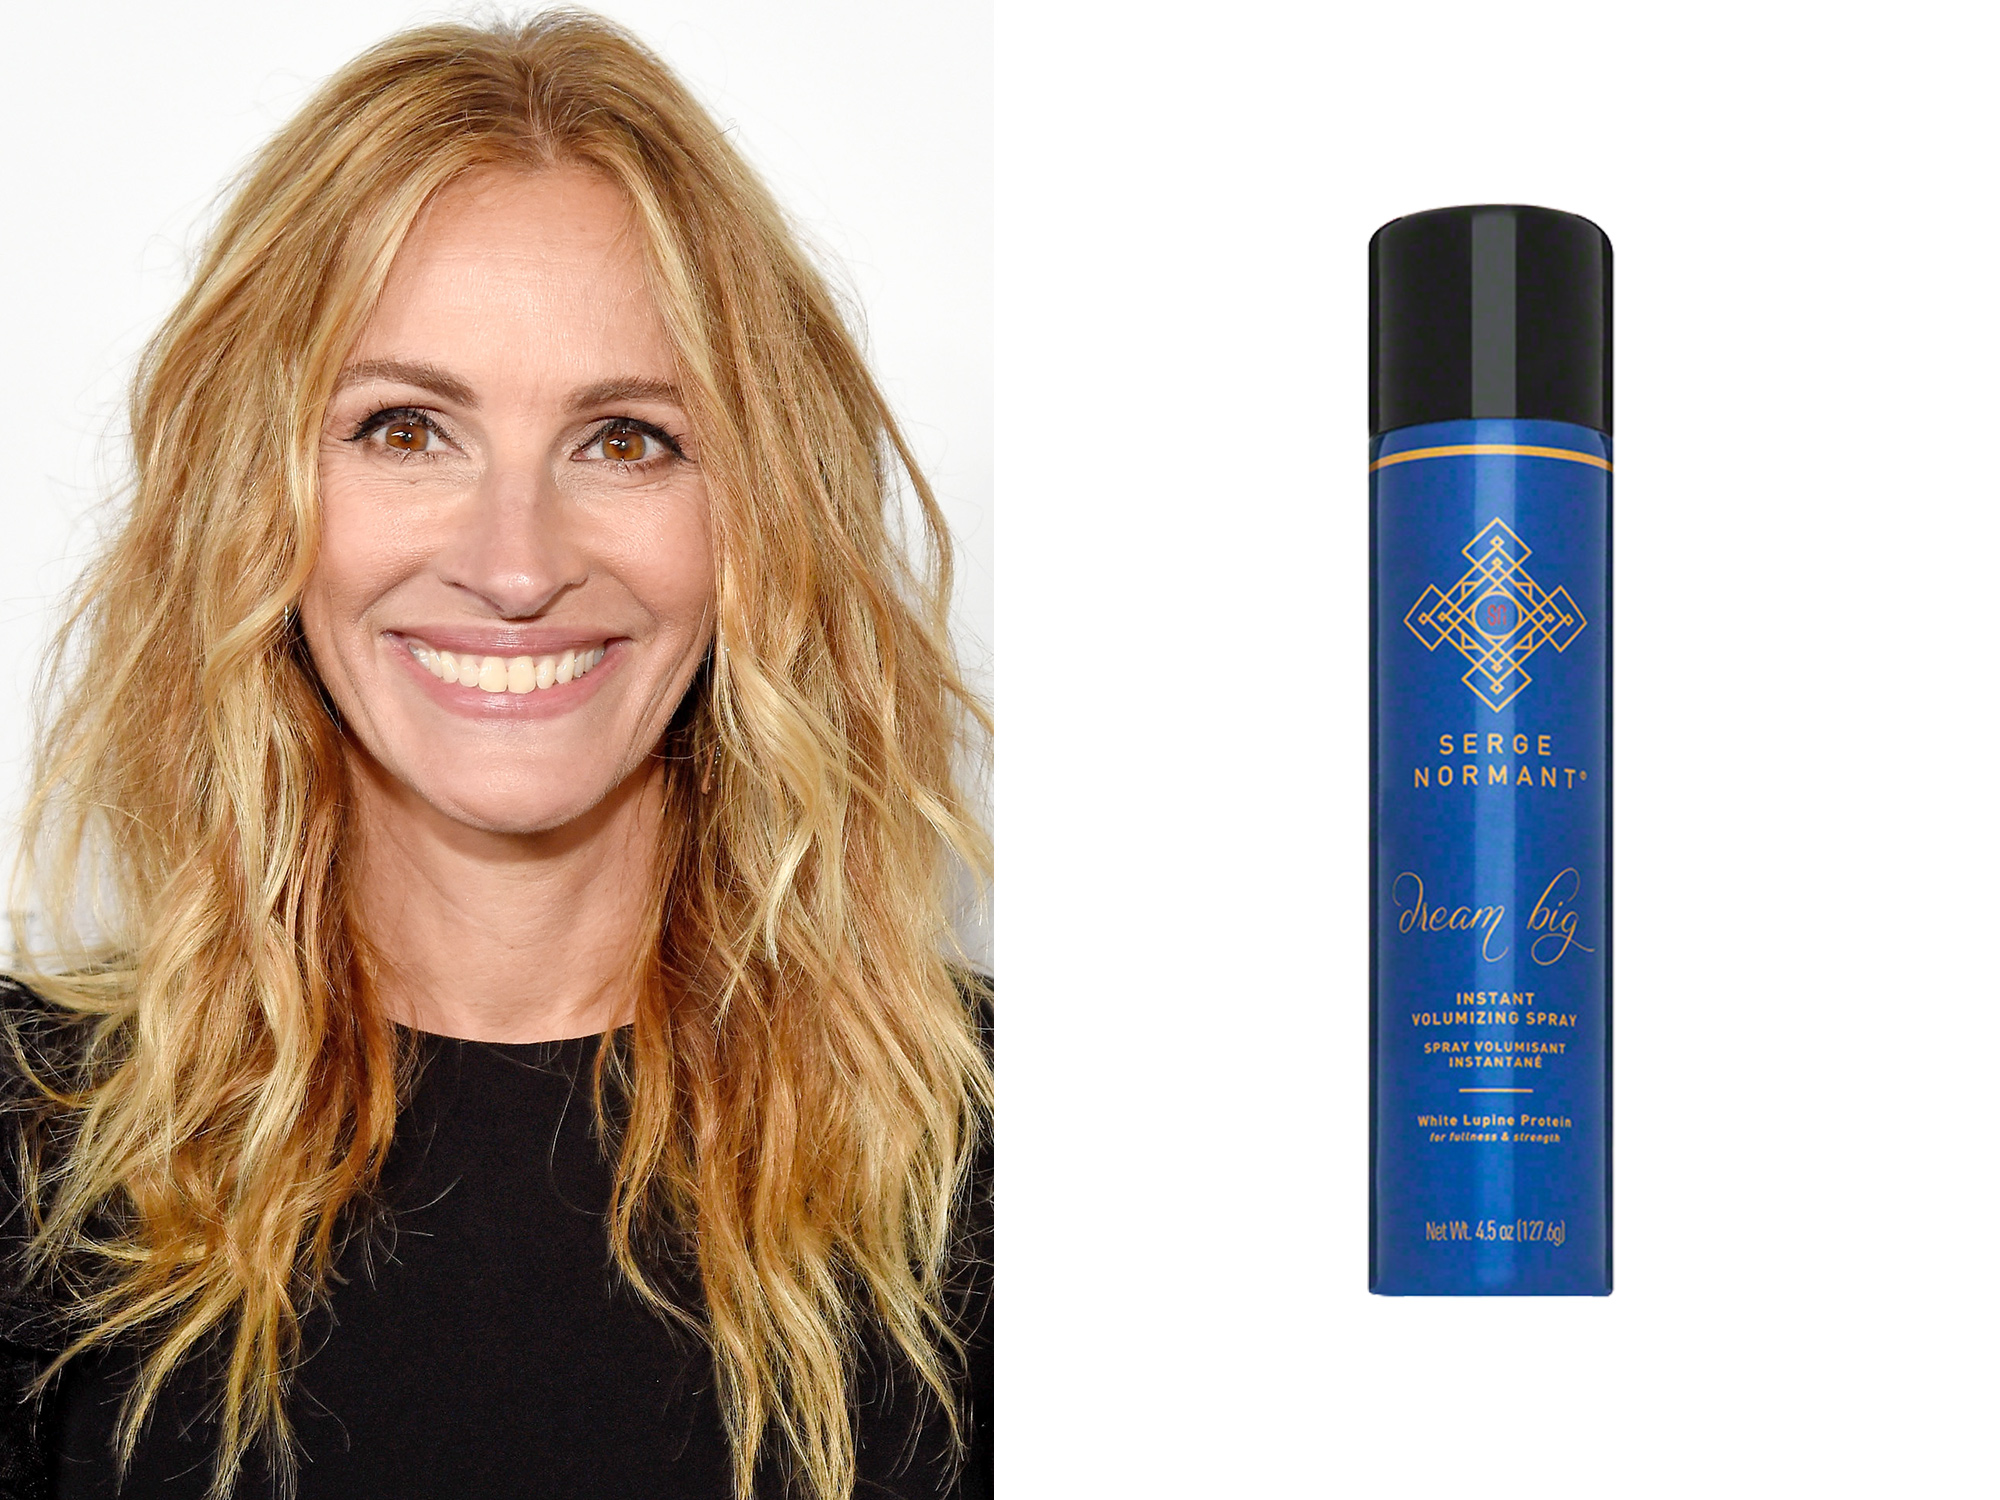 Julia Roberts: Serge Normant Dream Big Instant Volumizing Spray